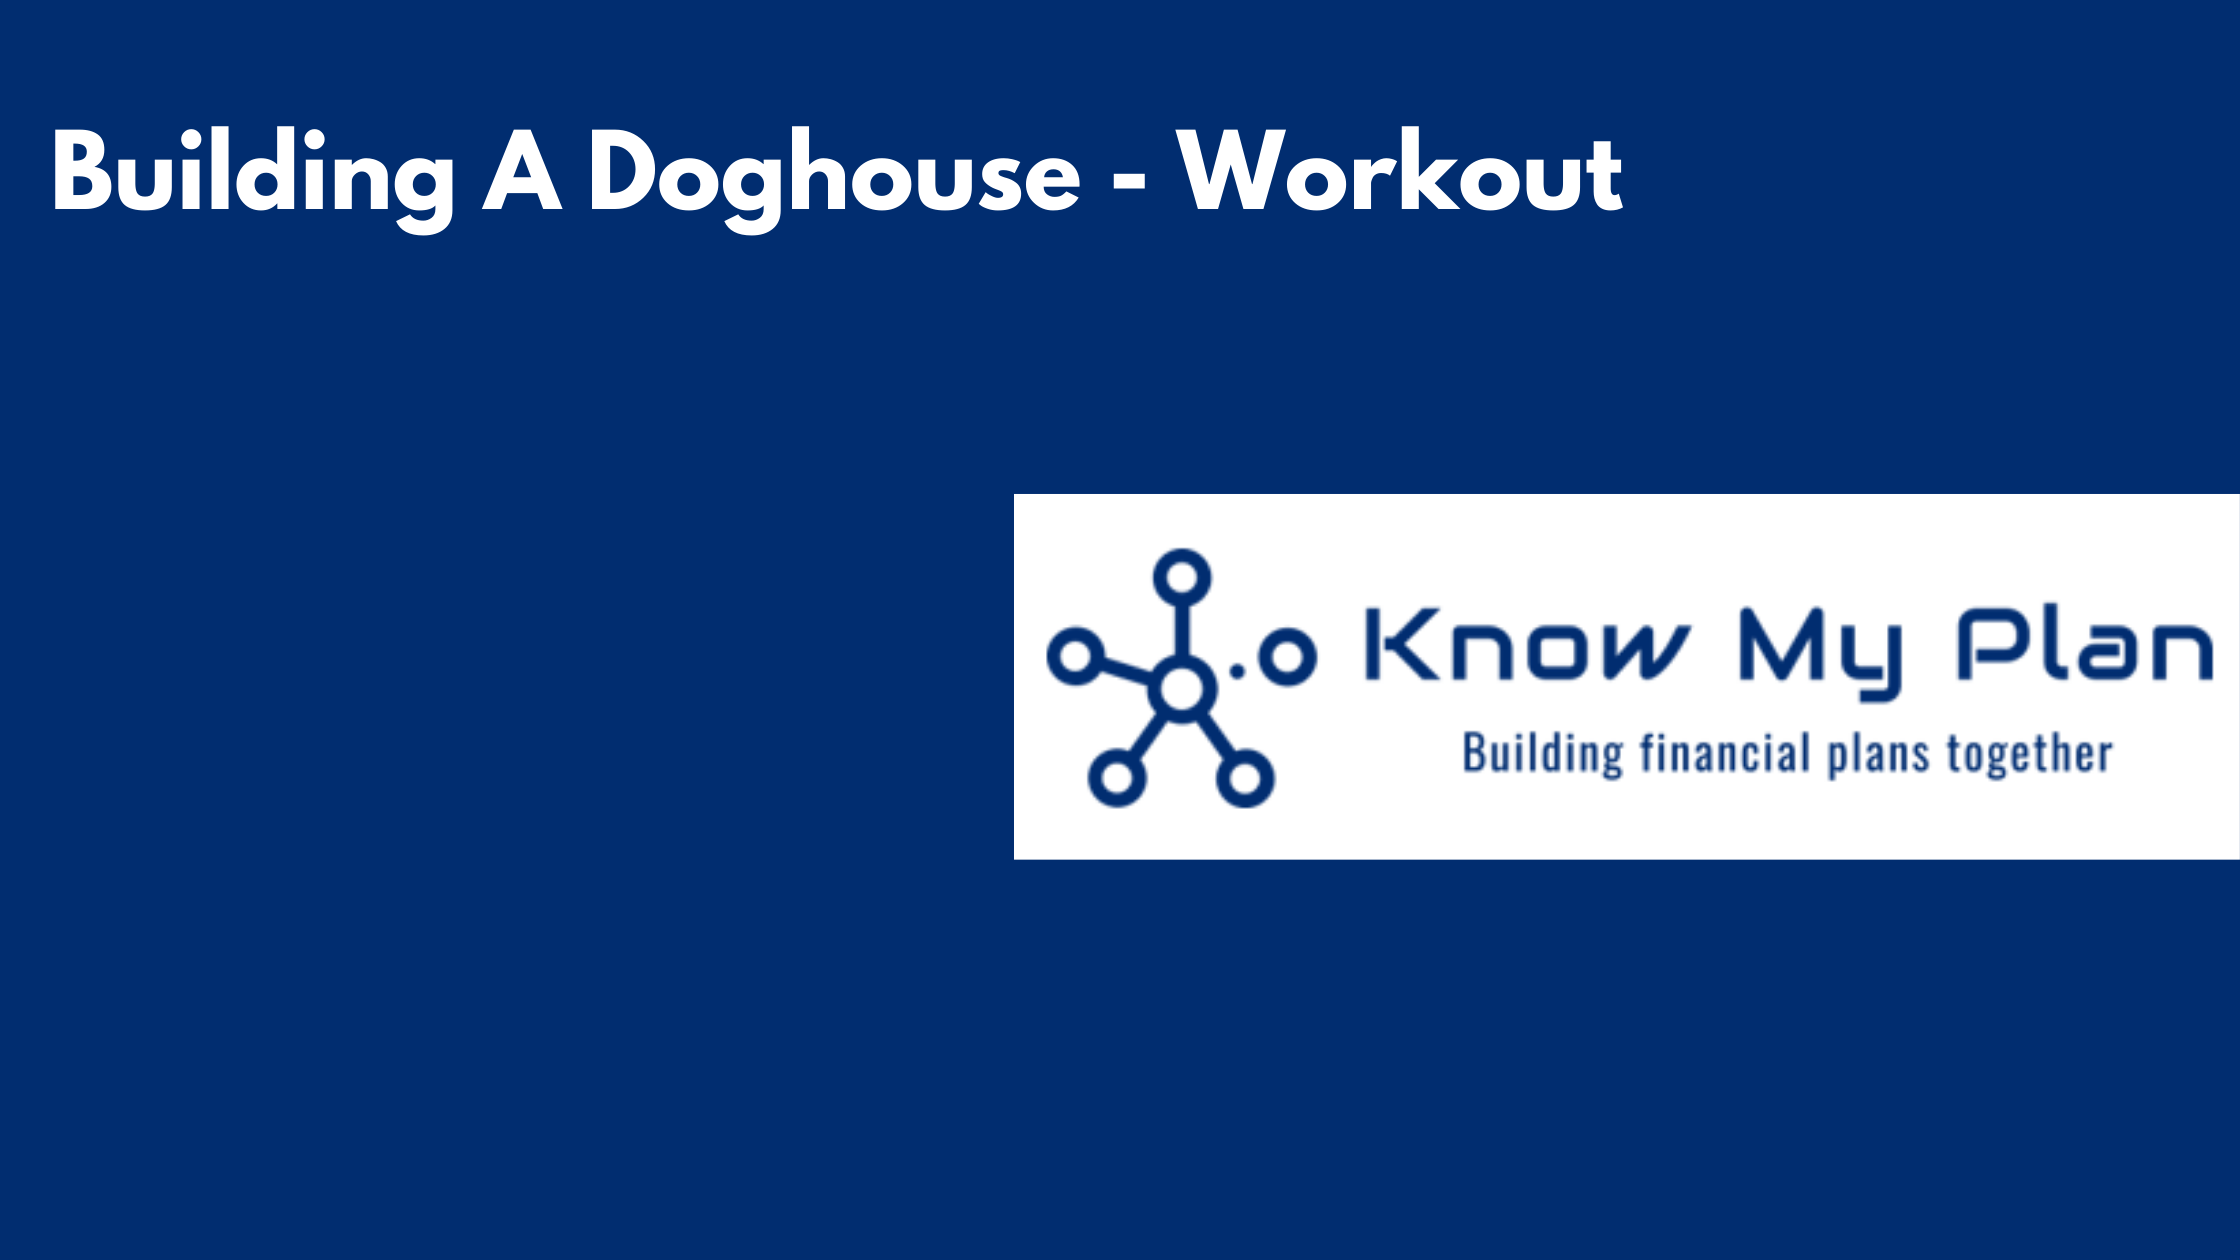 Building A Doghouse Workout